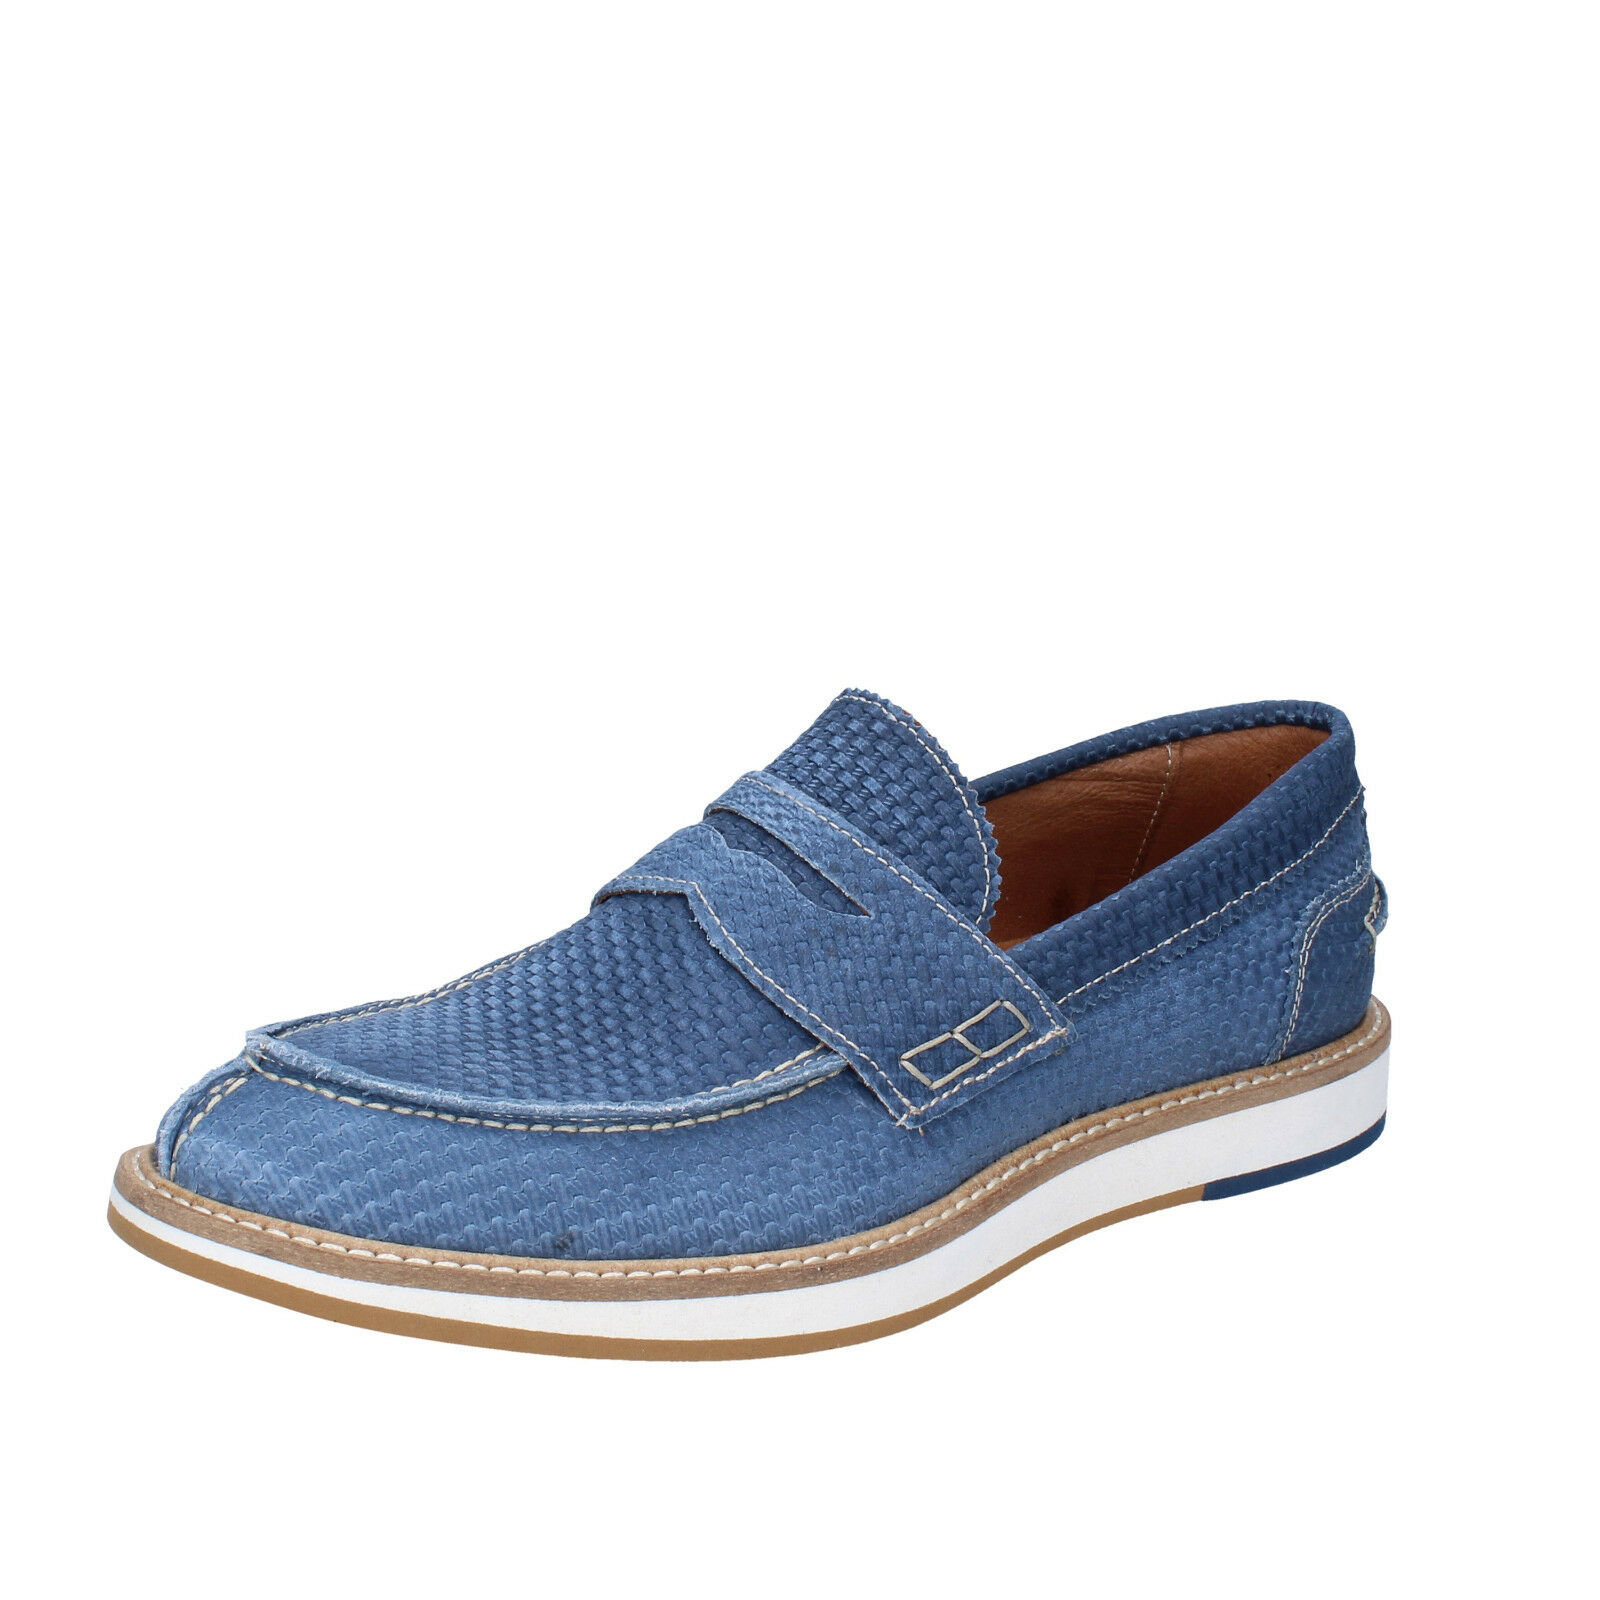 Mens shoes +2 MADE IN ITALY 6 () loafers elegant bluee nabuk BT691-40